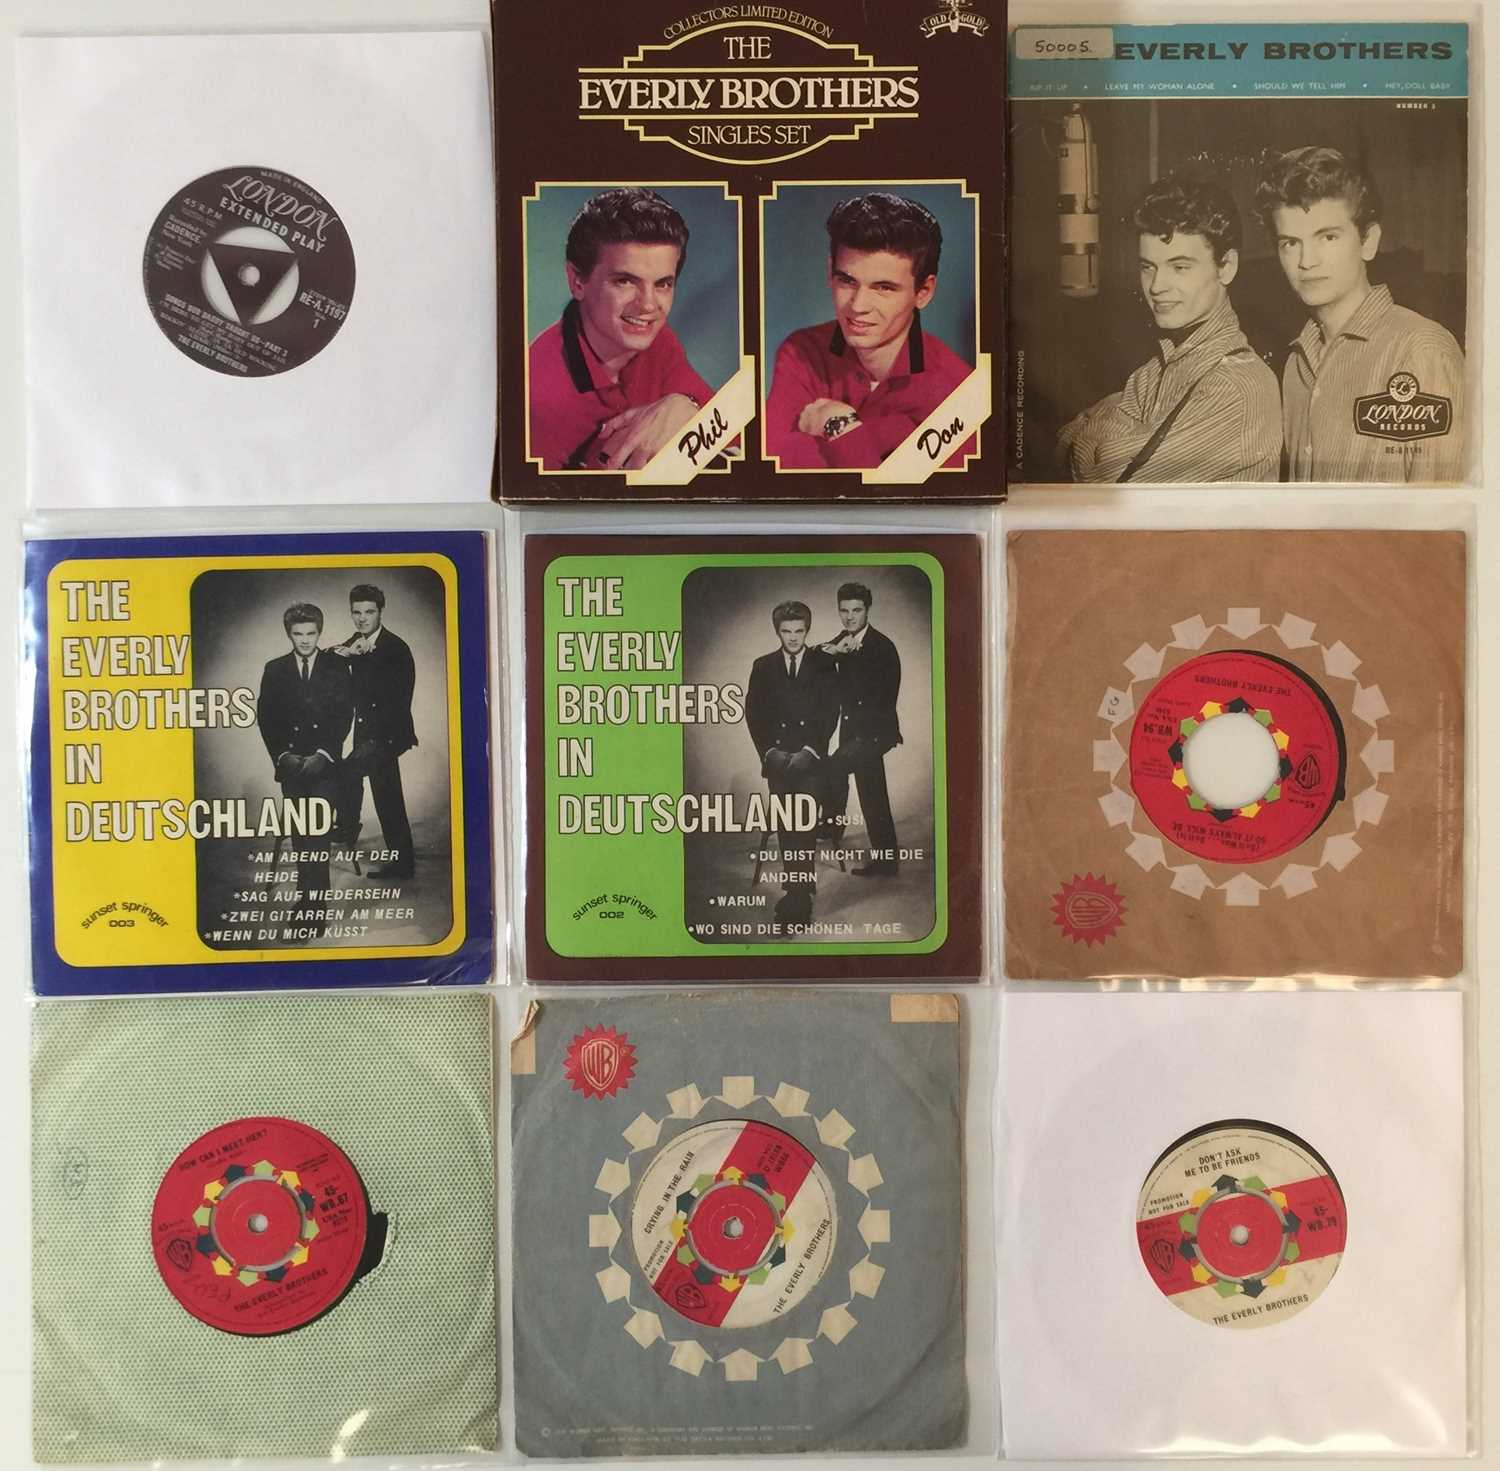 """THE EVERLY BROTHERS - LPs/ 7"""" (INC SIGNED LPs) - Image 2 of 4"""